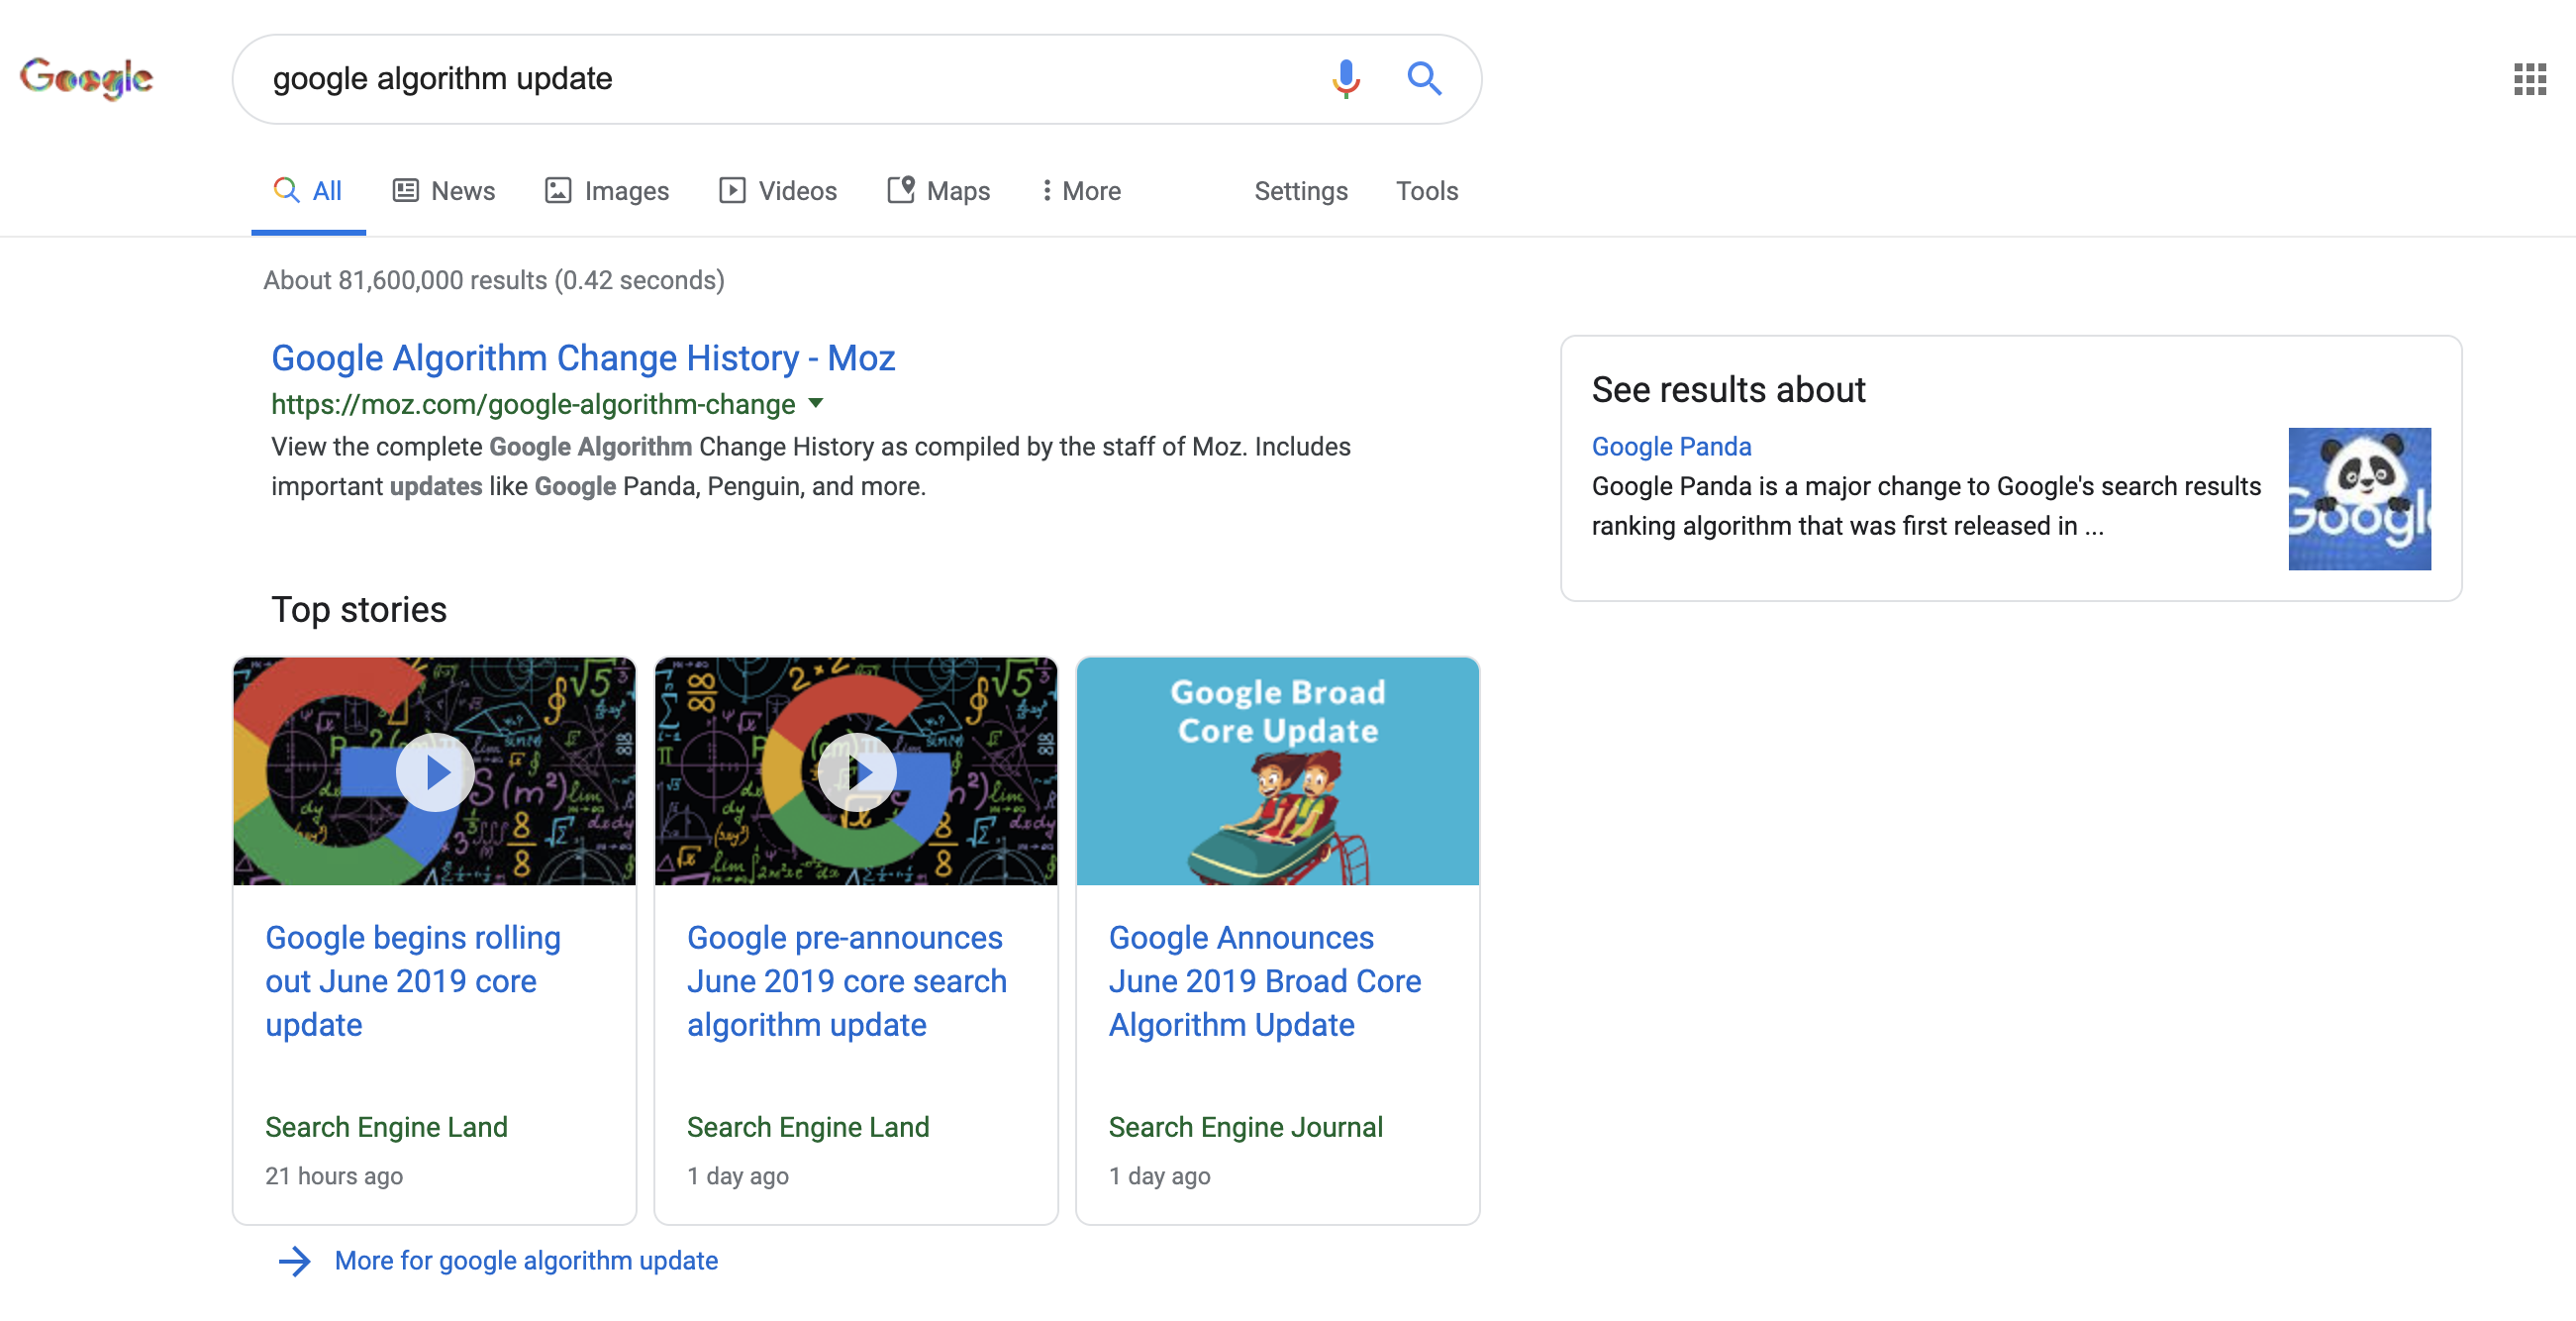 Google Began Rolling Out Core Algorithm Update on June 3rd